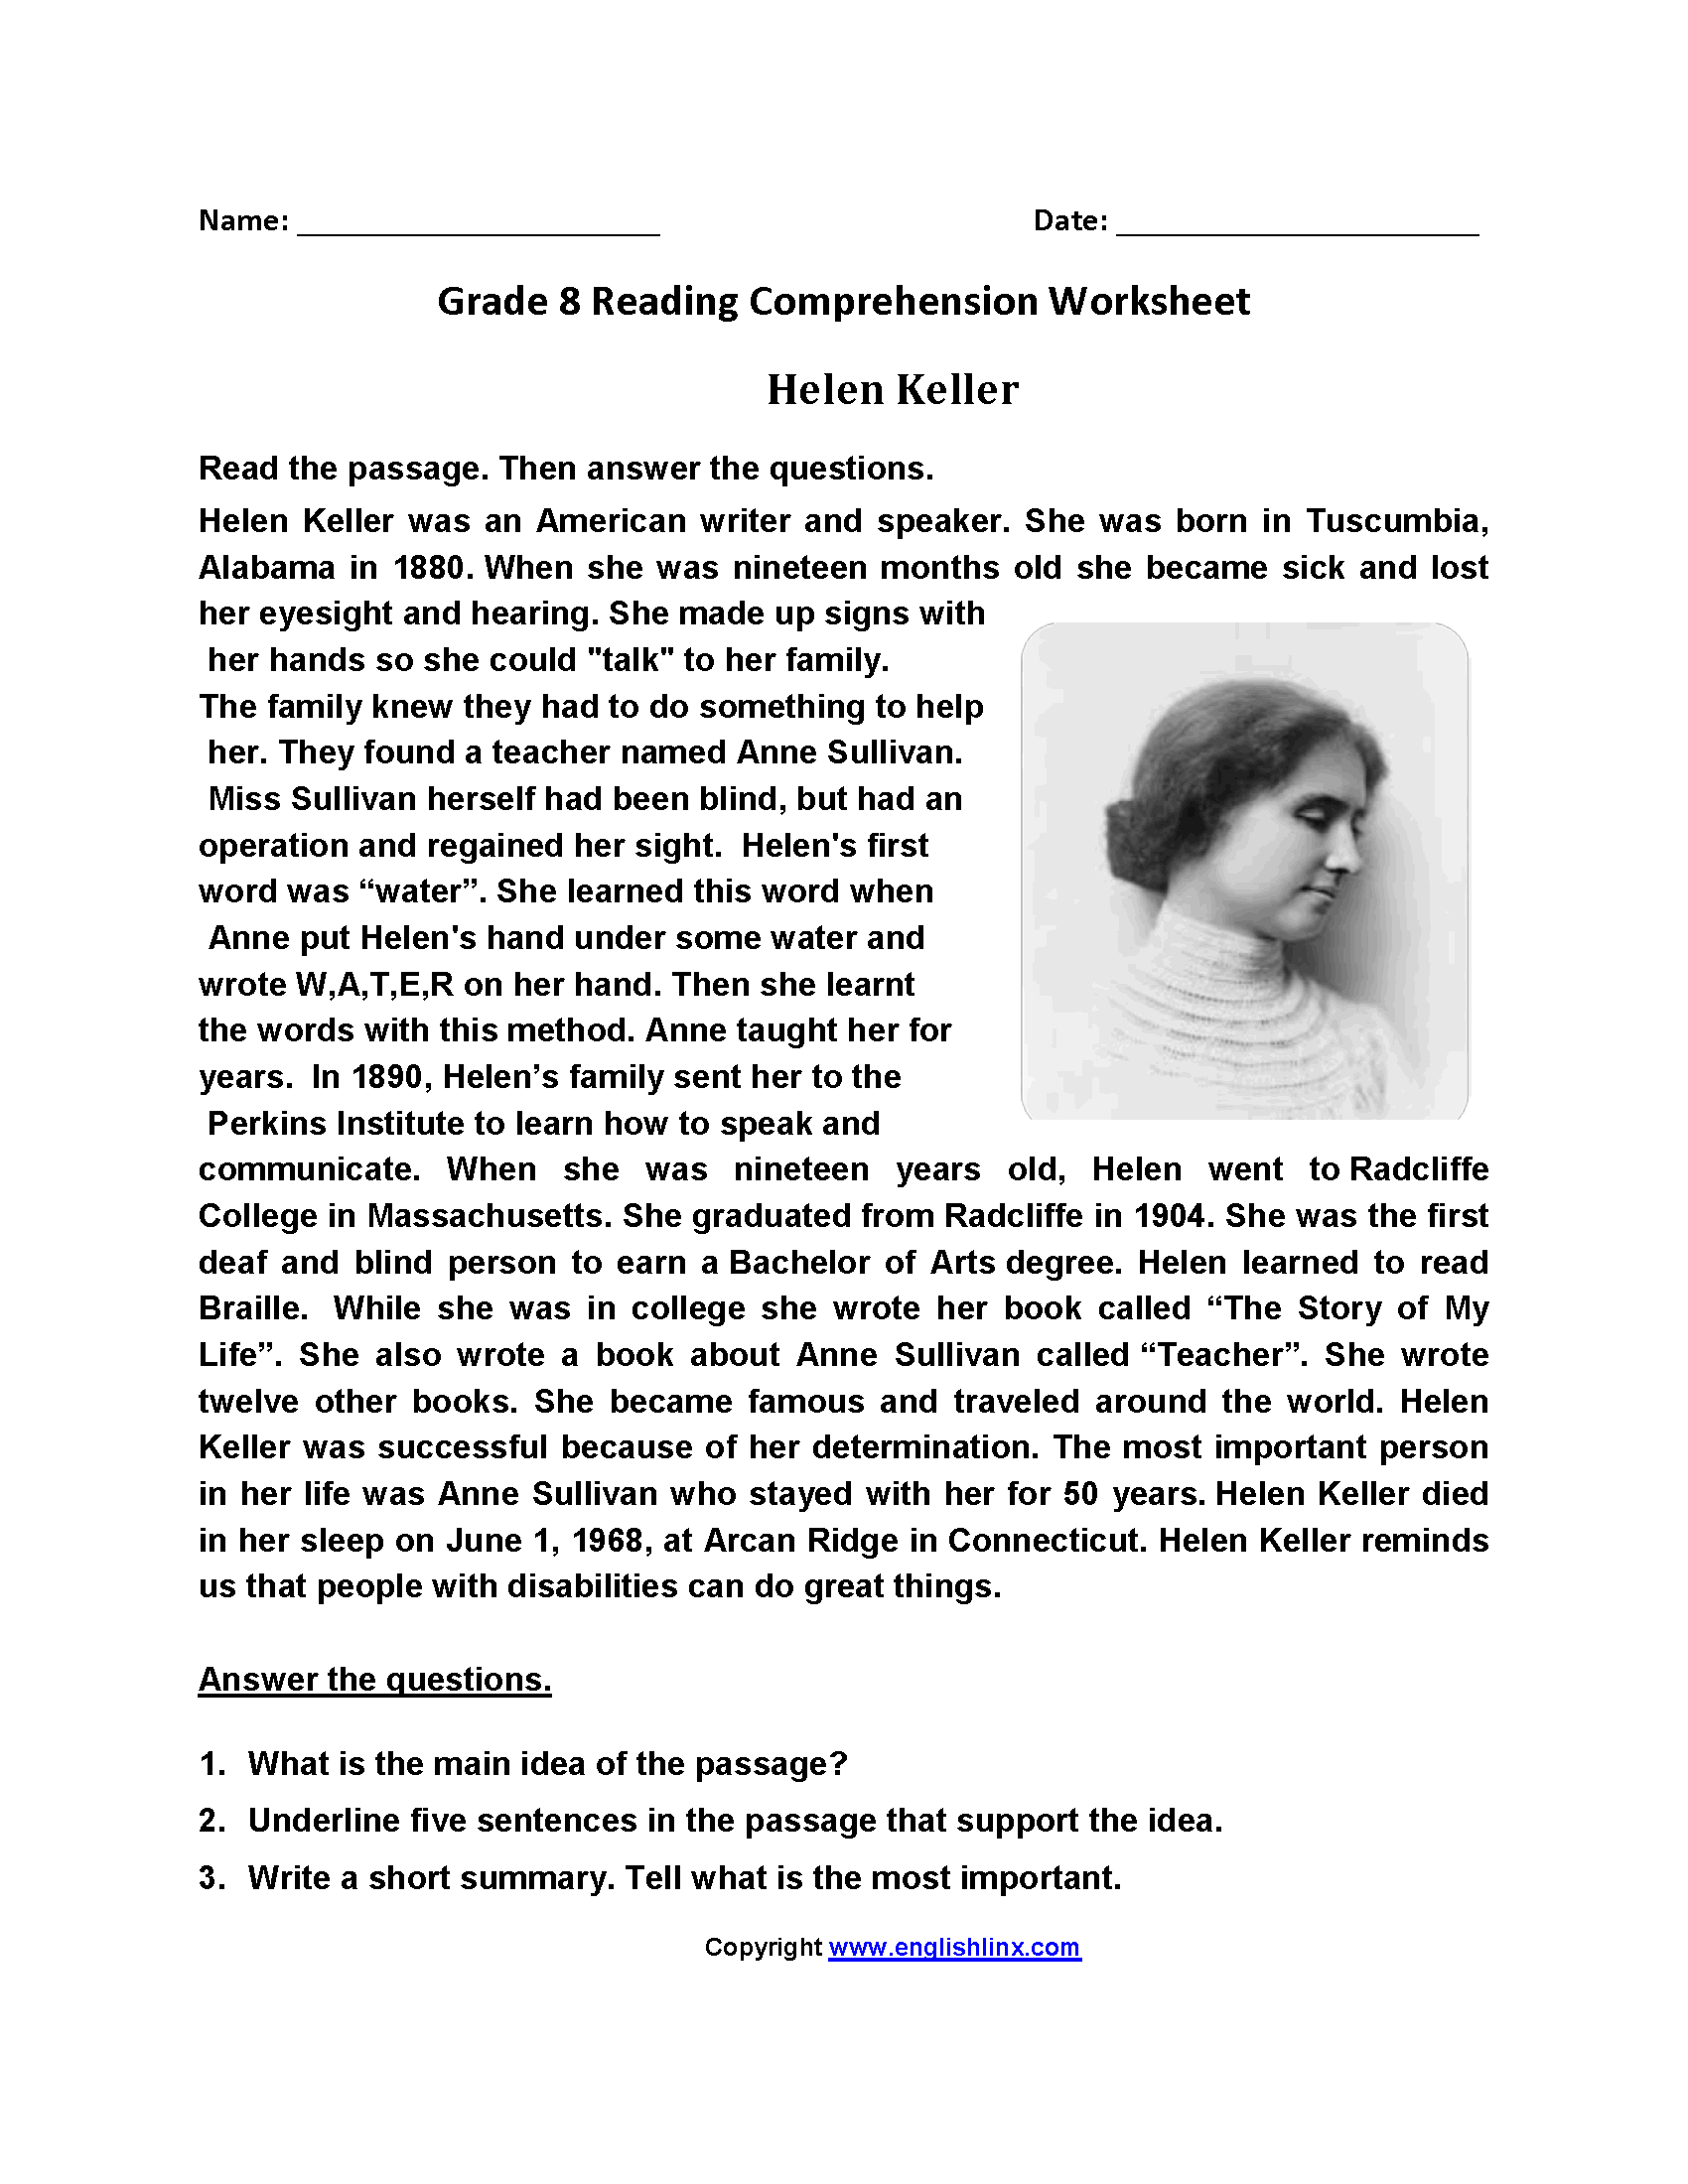 Reading Comprehension Worksheet 8th Grade